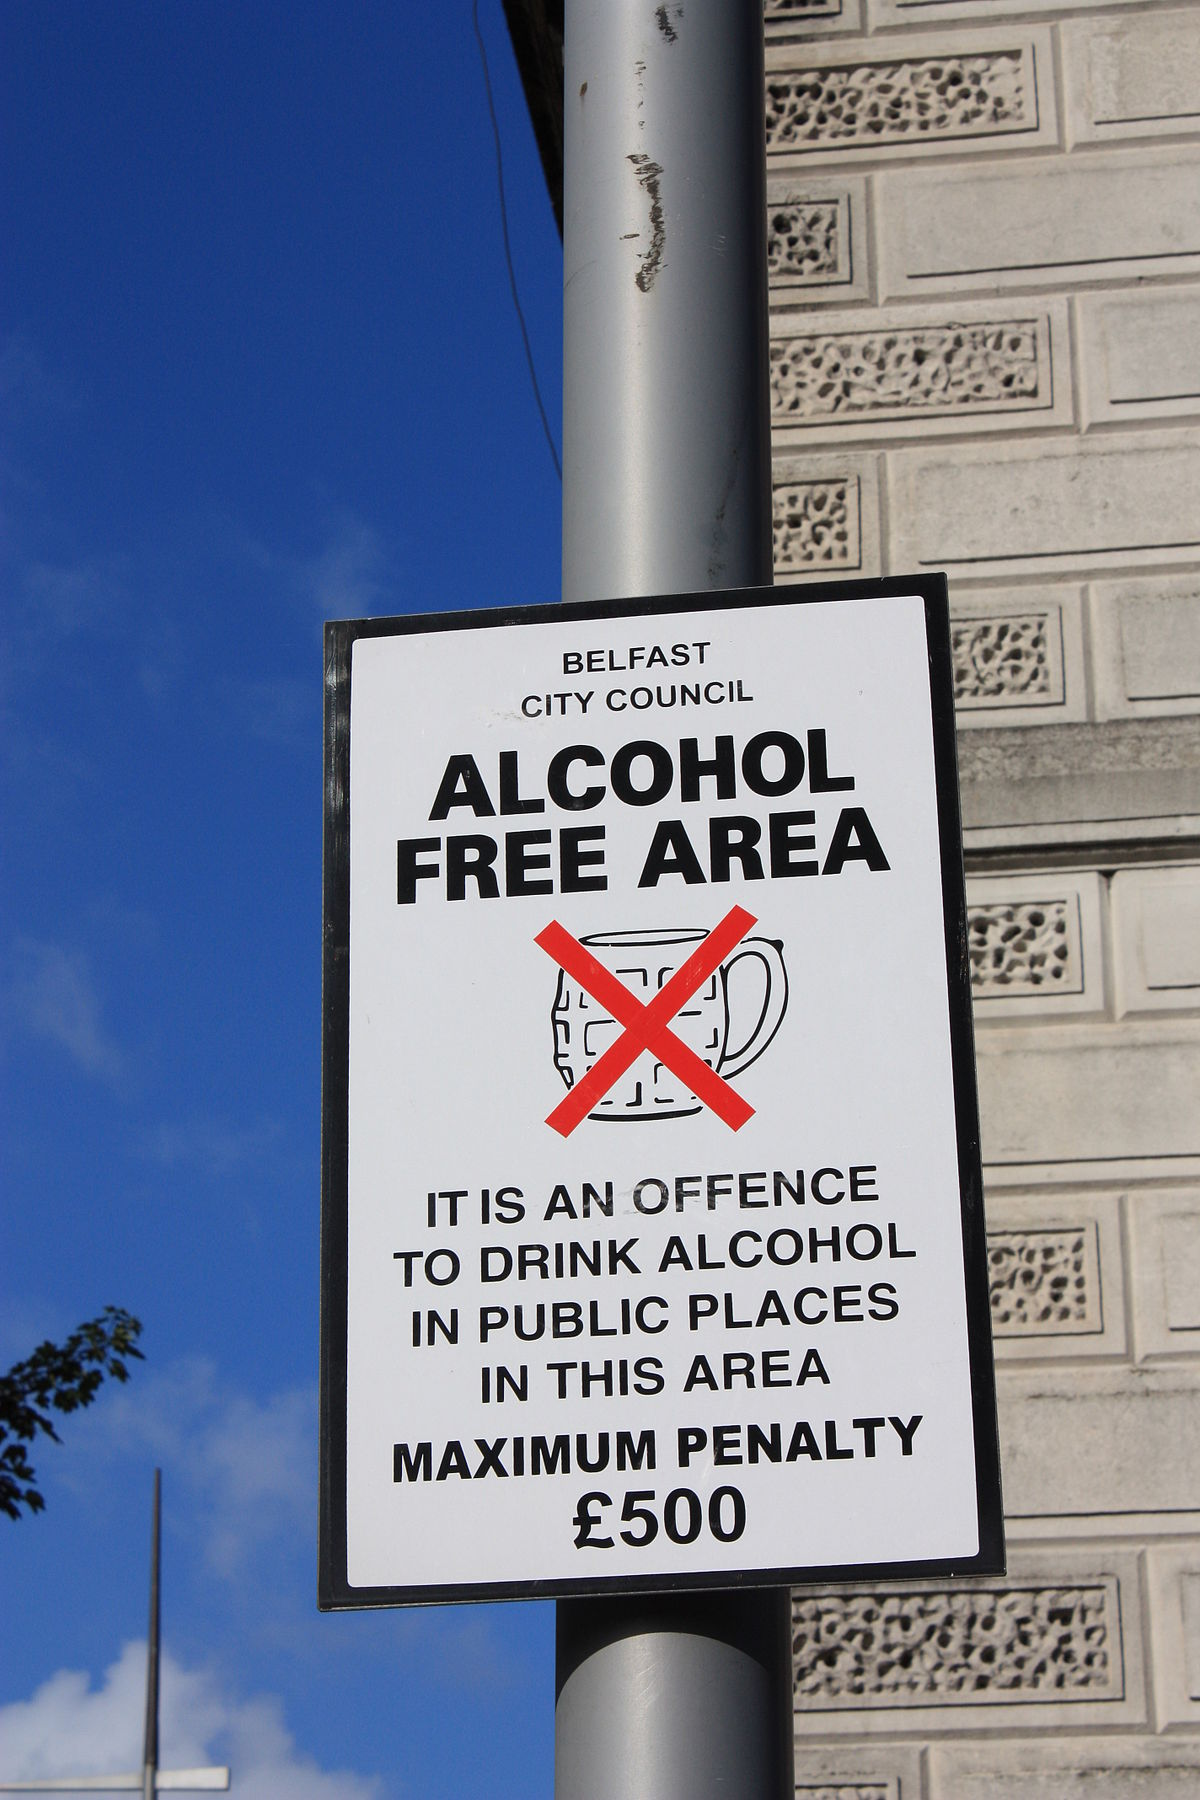 What is the penalty for drinking alcohol in public places to an individual